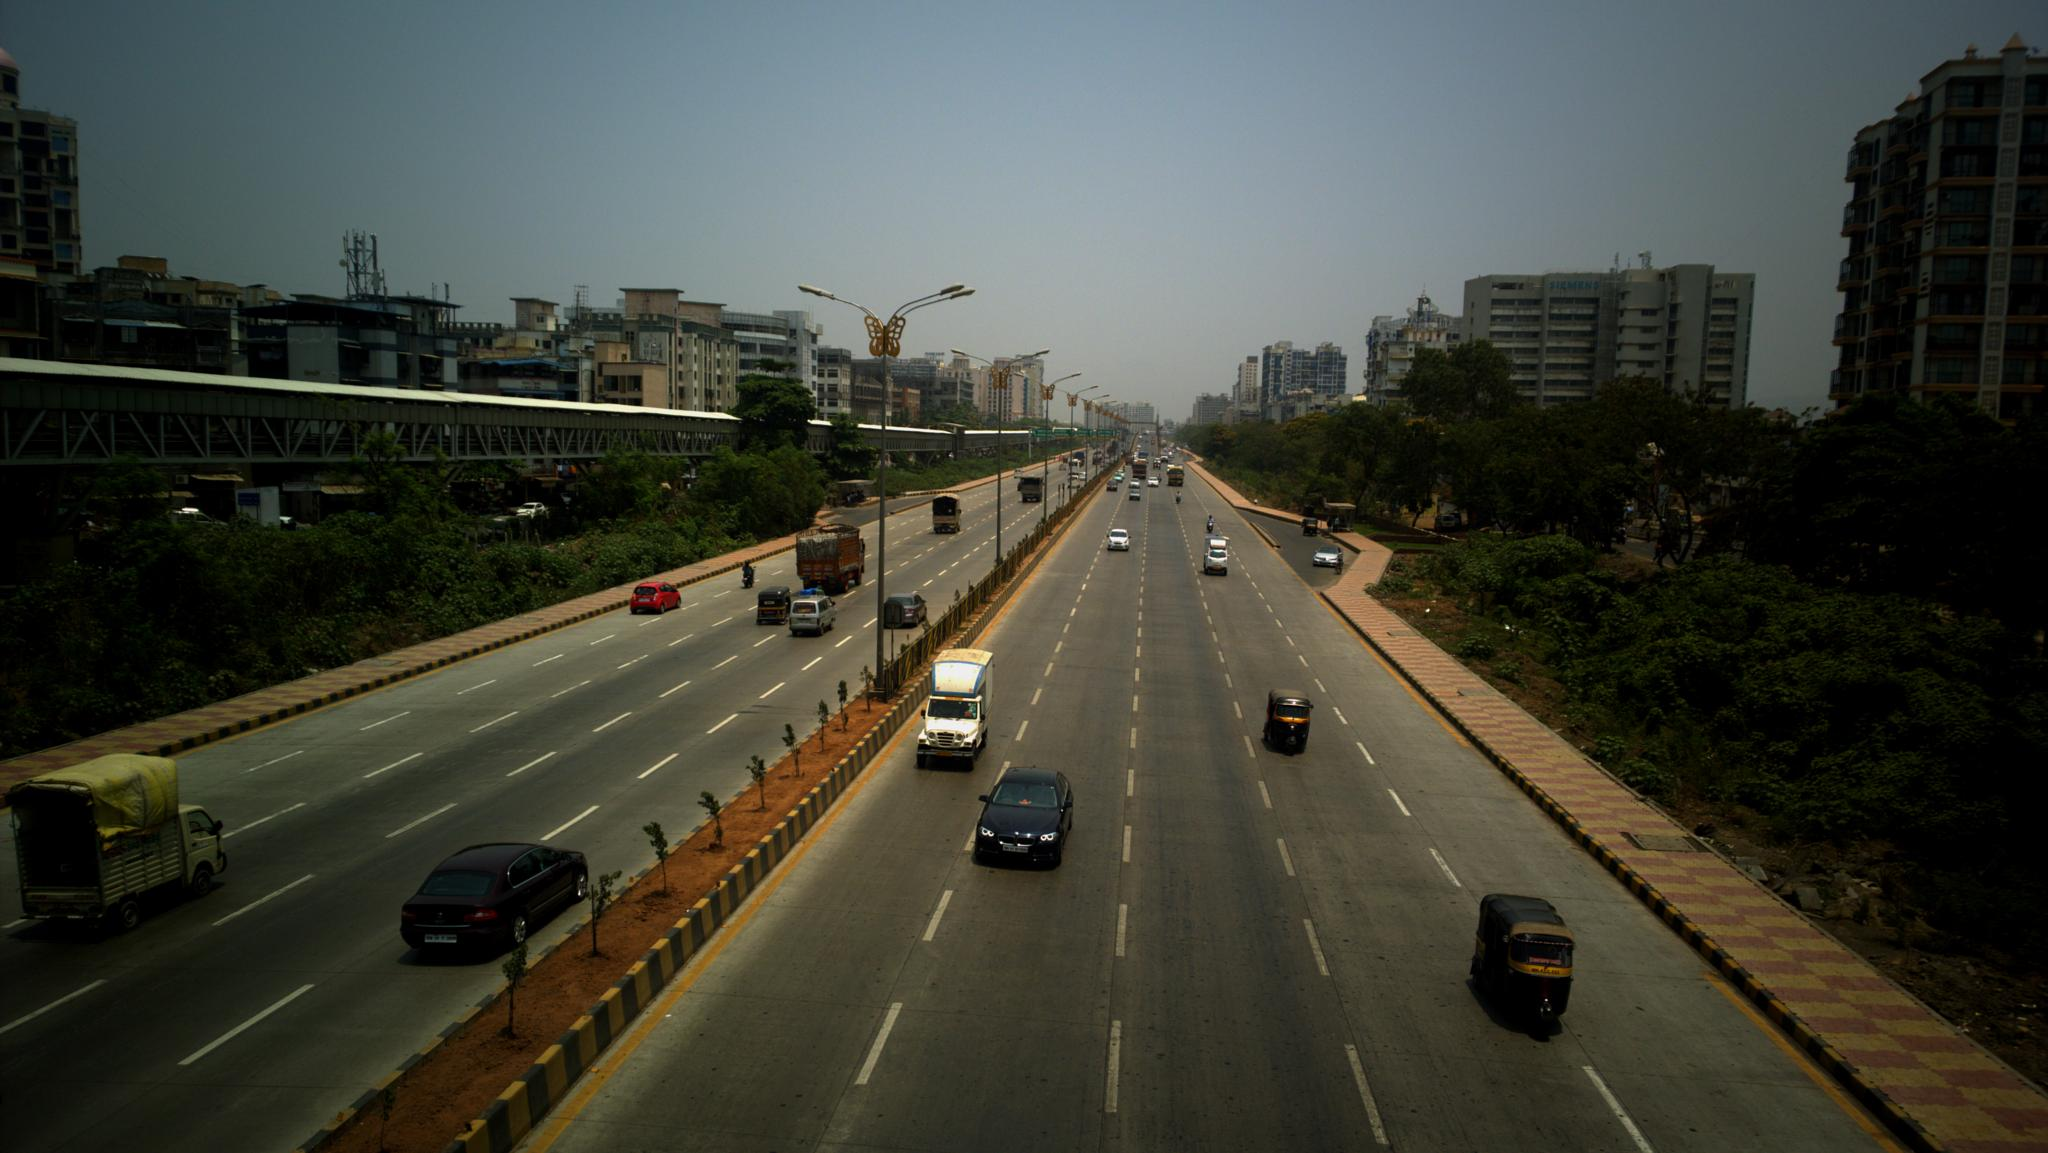 City and Highway by Sanket Joshi